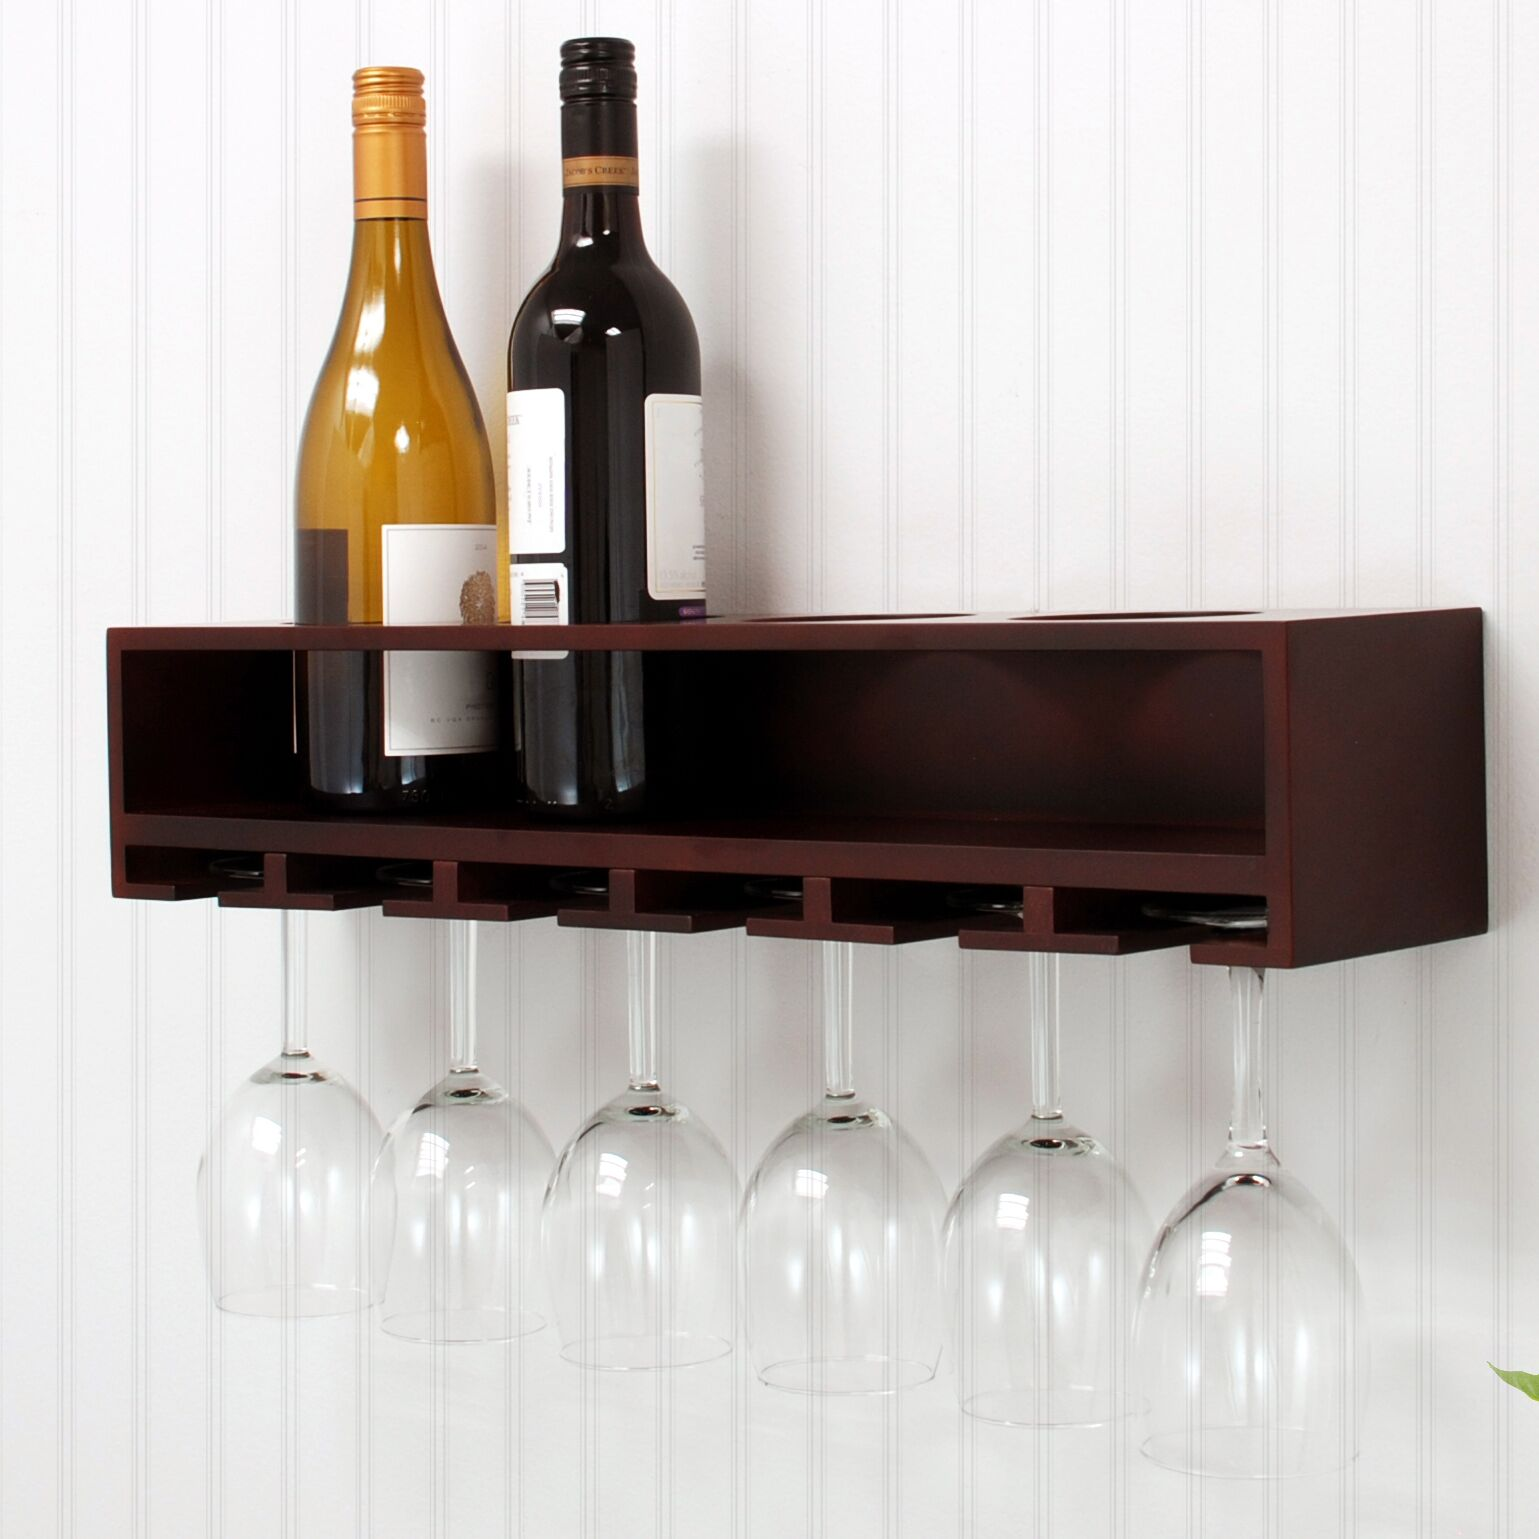 Claret 4 Bottle Wall Mounted Wine Rack